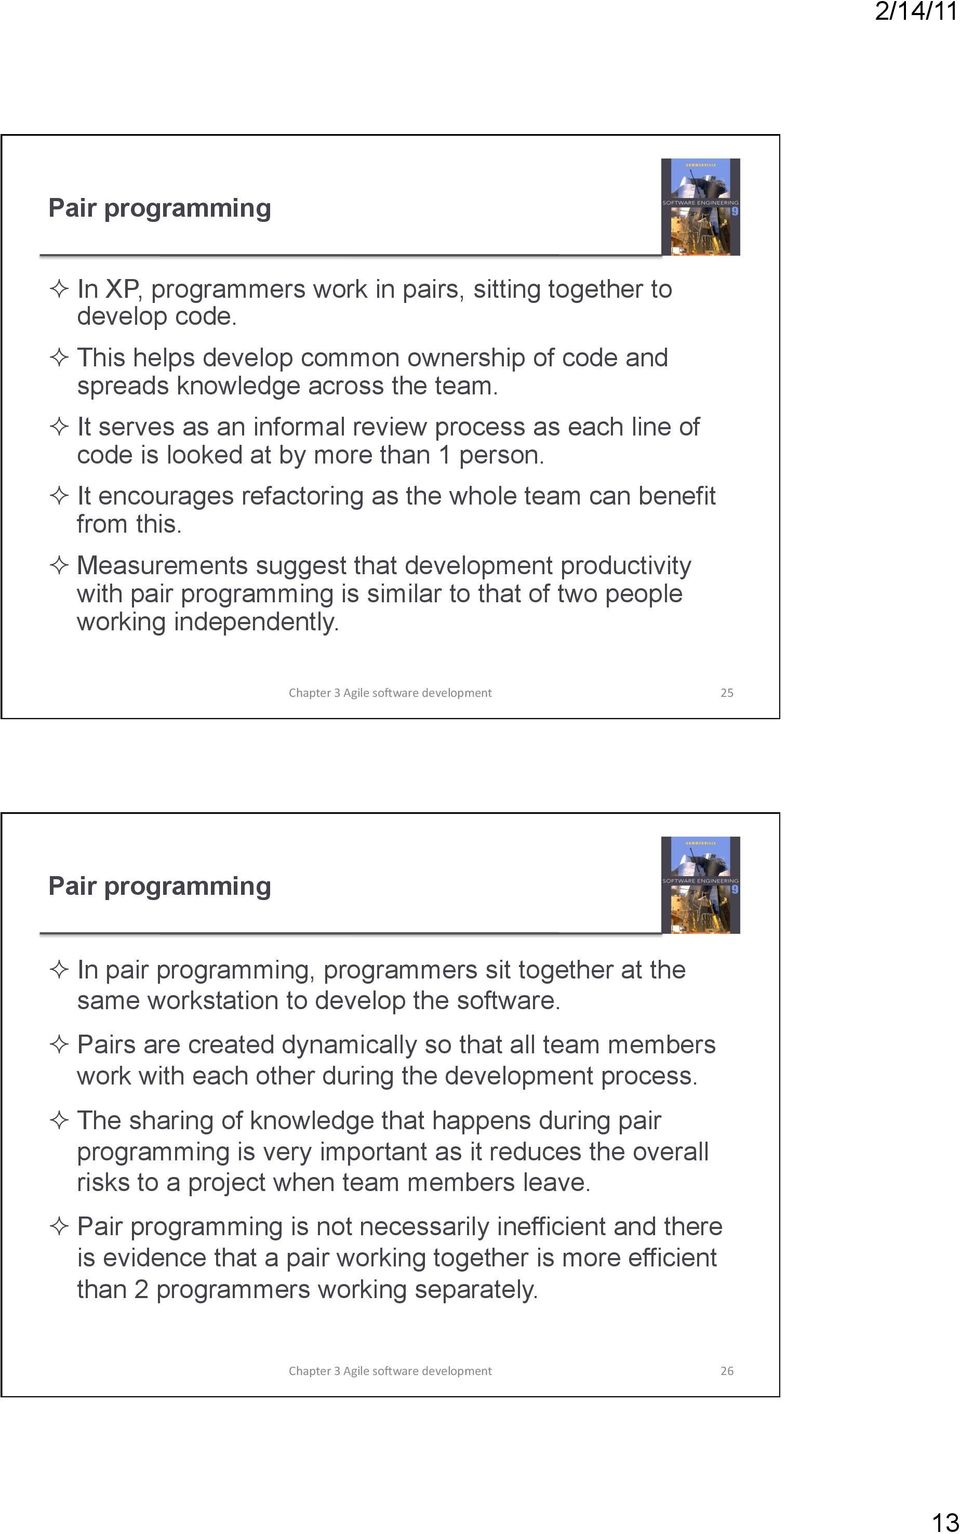 Measurements suggest that development productivity with pair programming is similar to that of two people working independently.